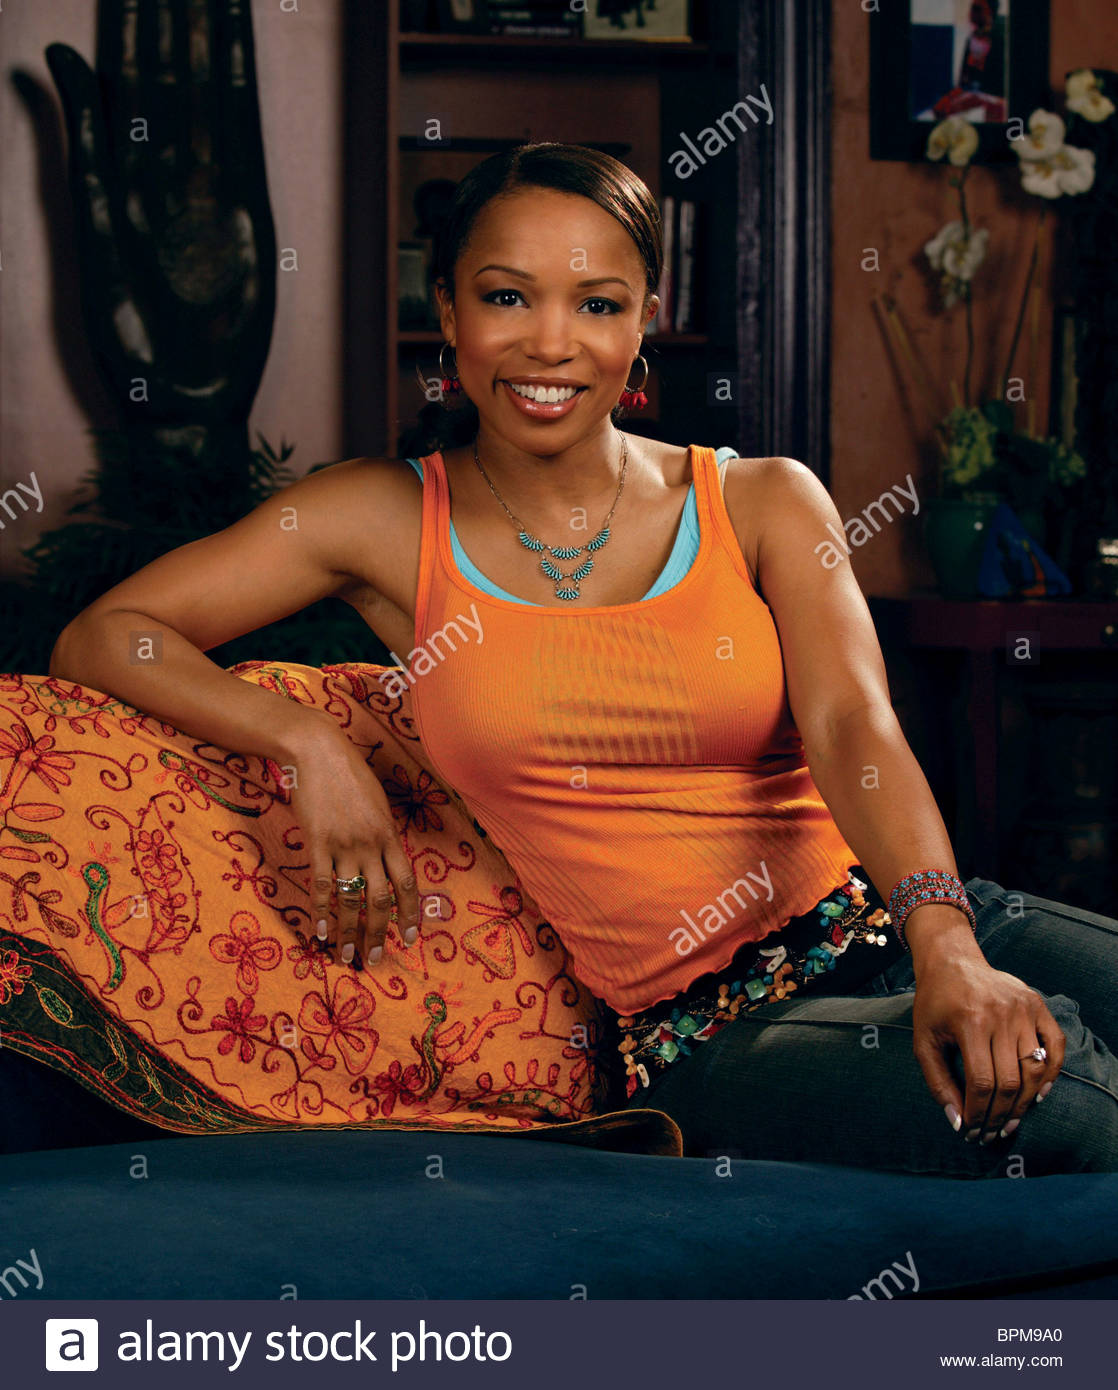 elise neal all of us 2003 stock photo 31179176 alamy